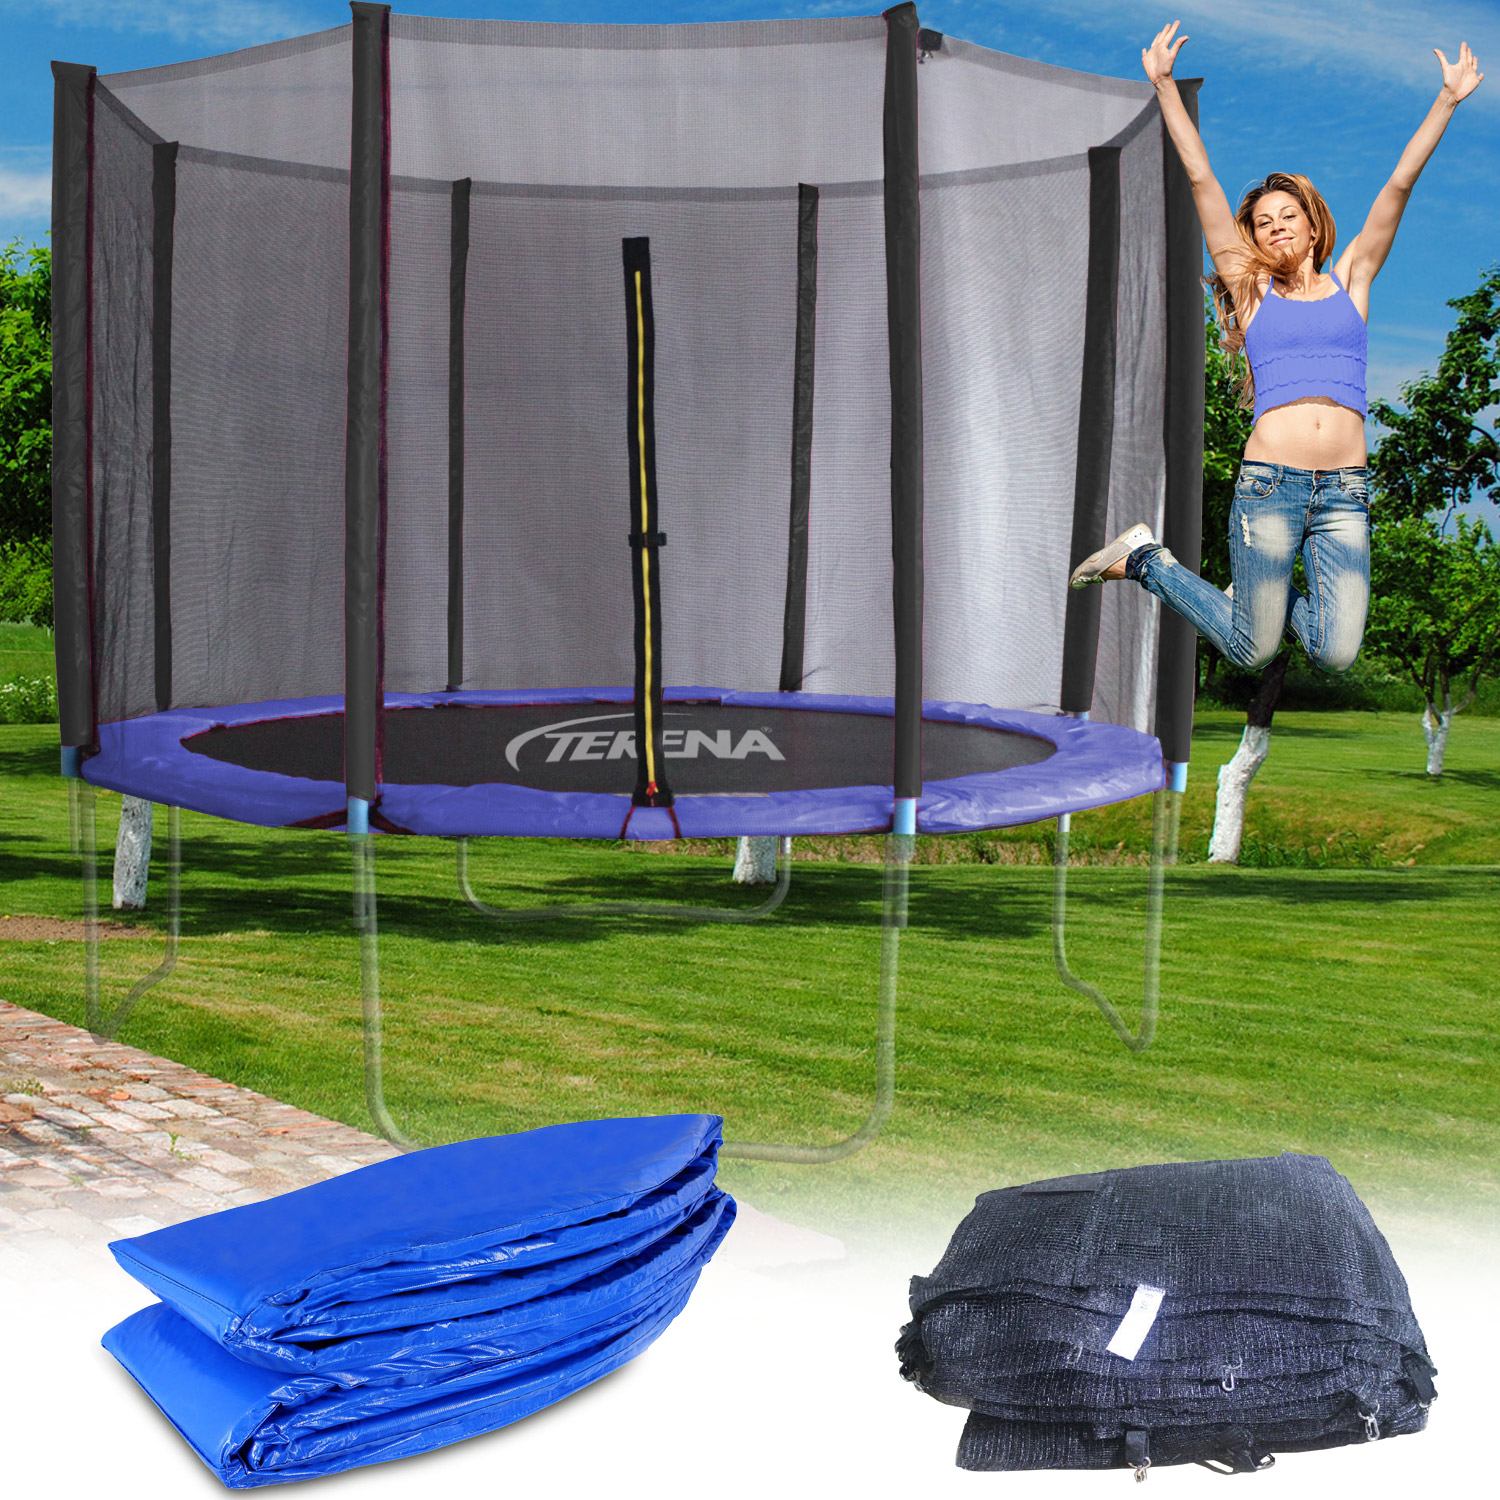 terena sicherheitsnetz federabdeckung f r trampolin 366 cm. Black Bedroom Furniture Sets. Home Design Ideas